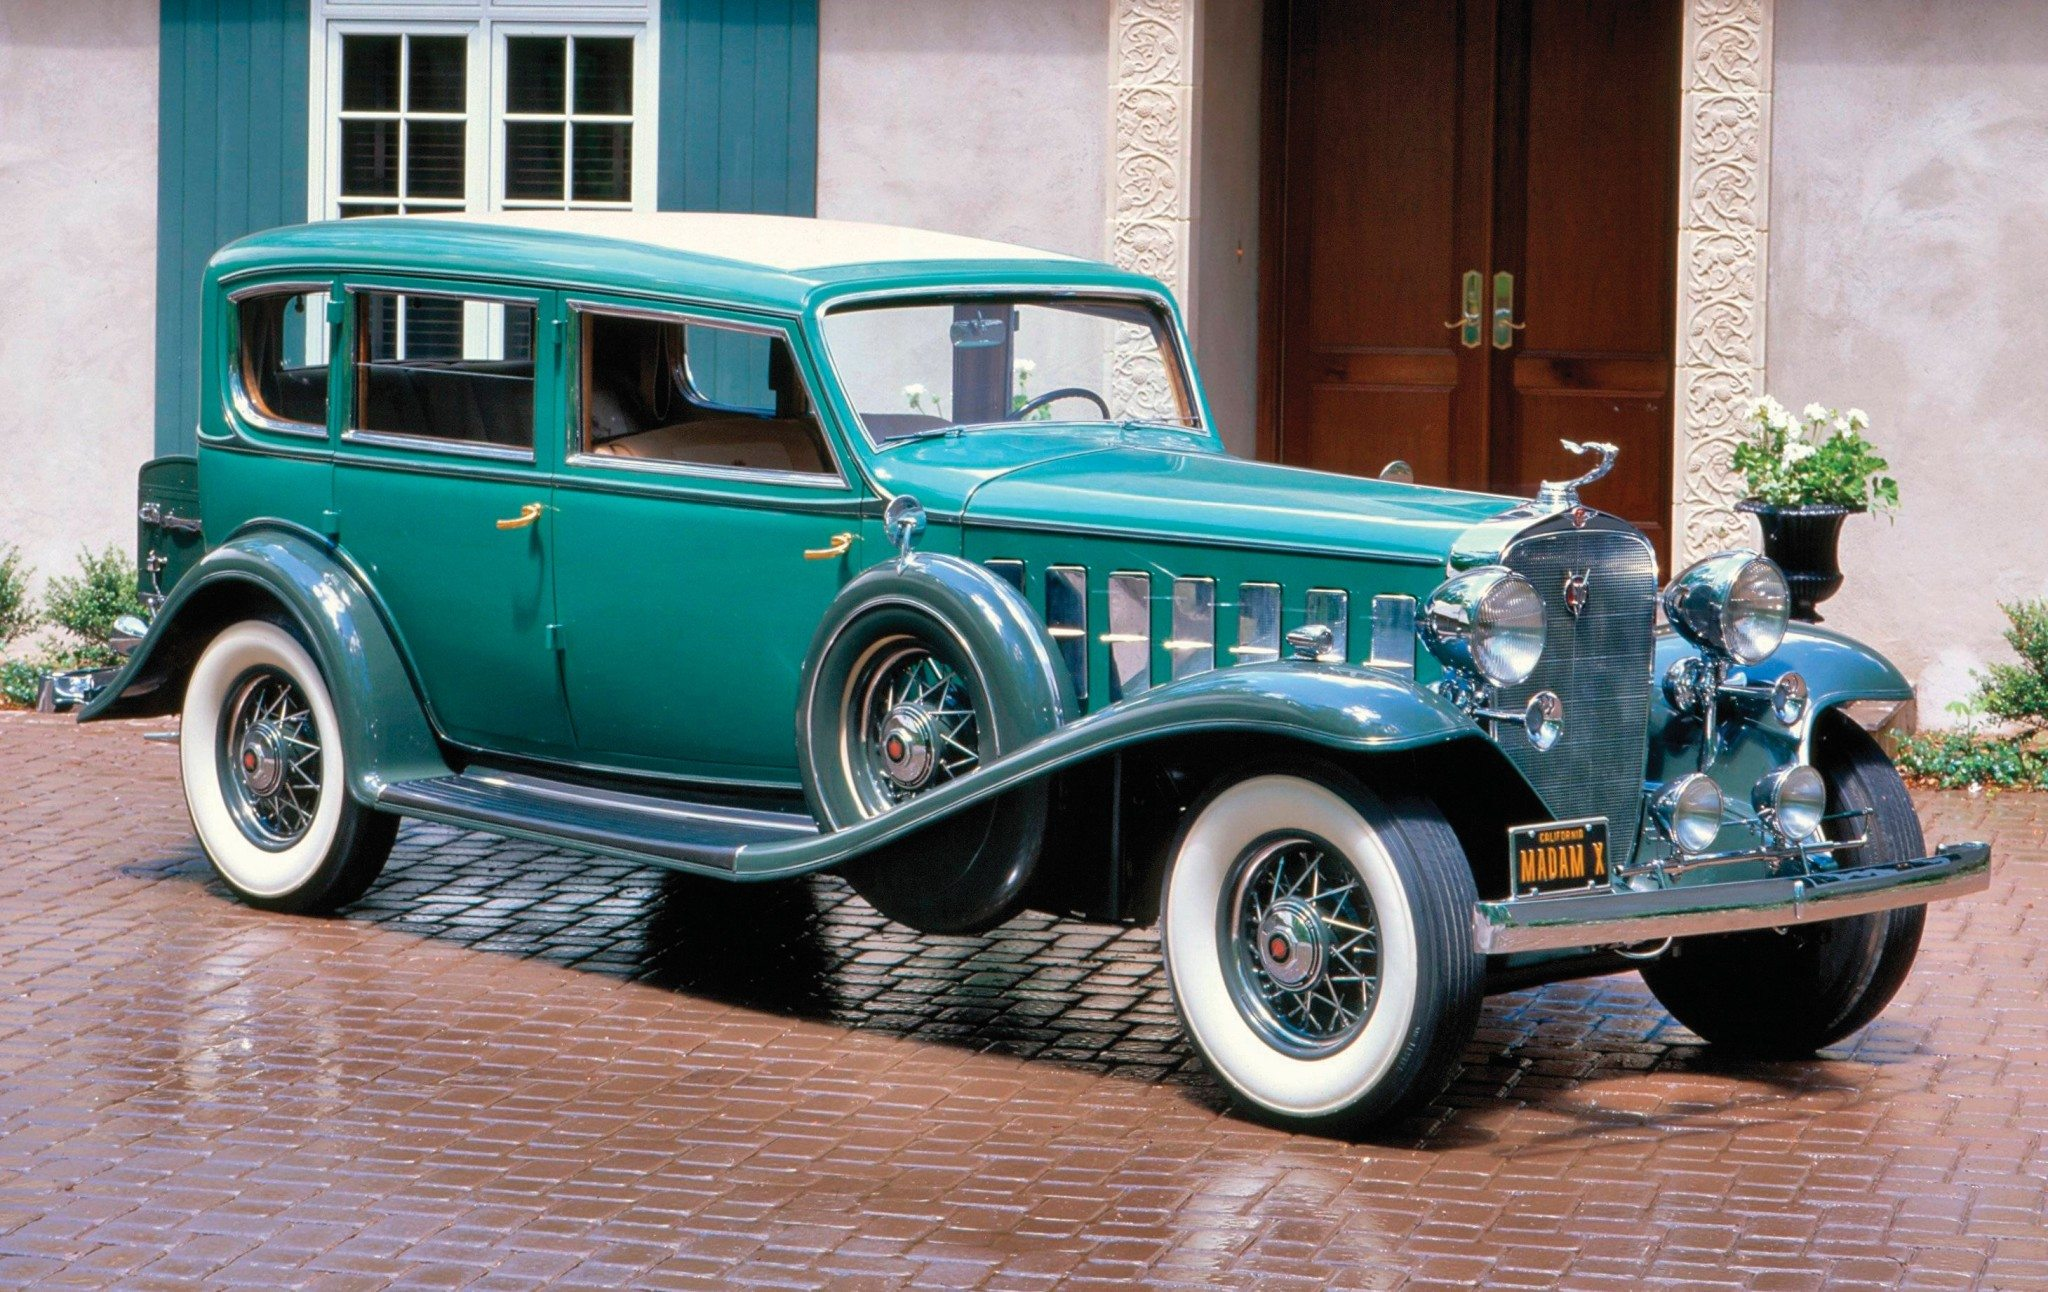 Green-Cadillac-One-off-Madam-X-sedan